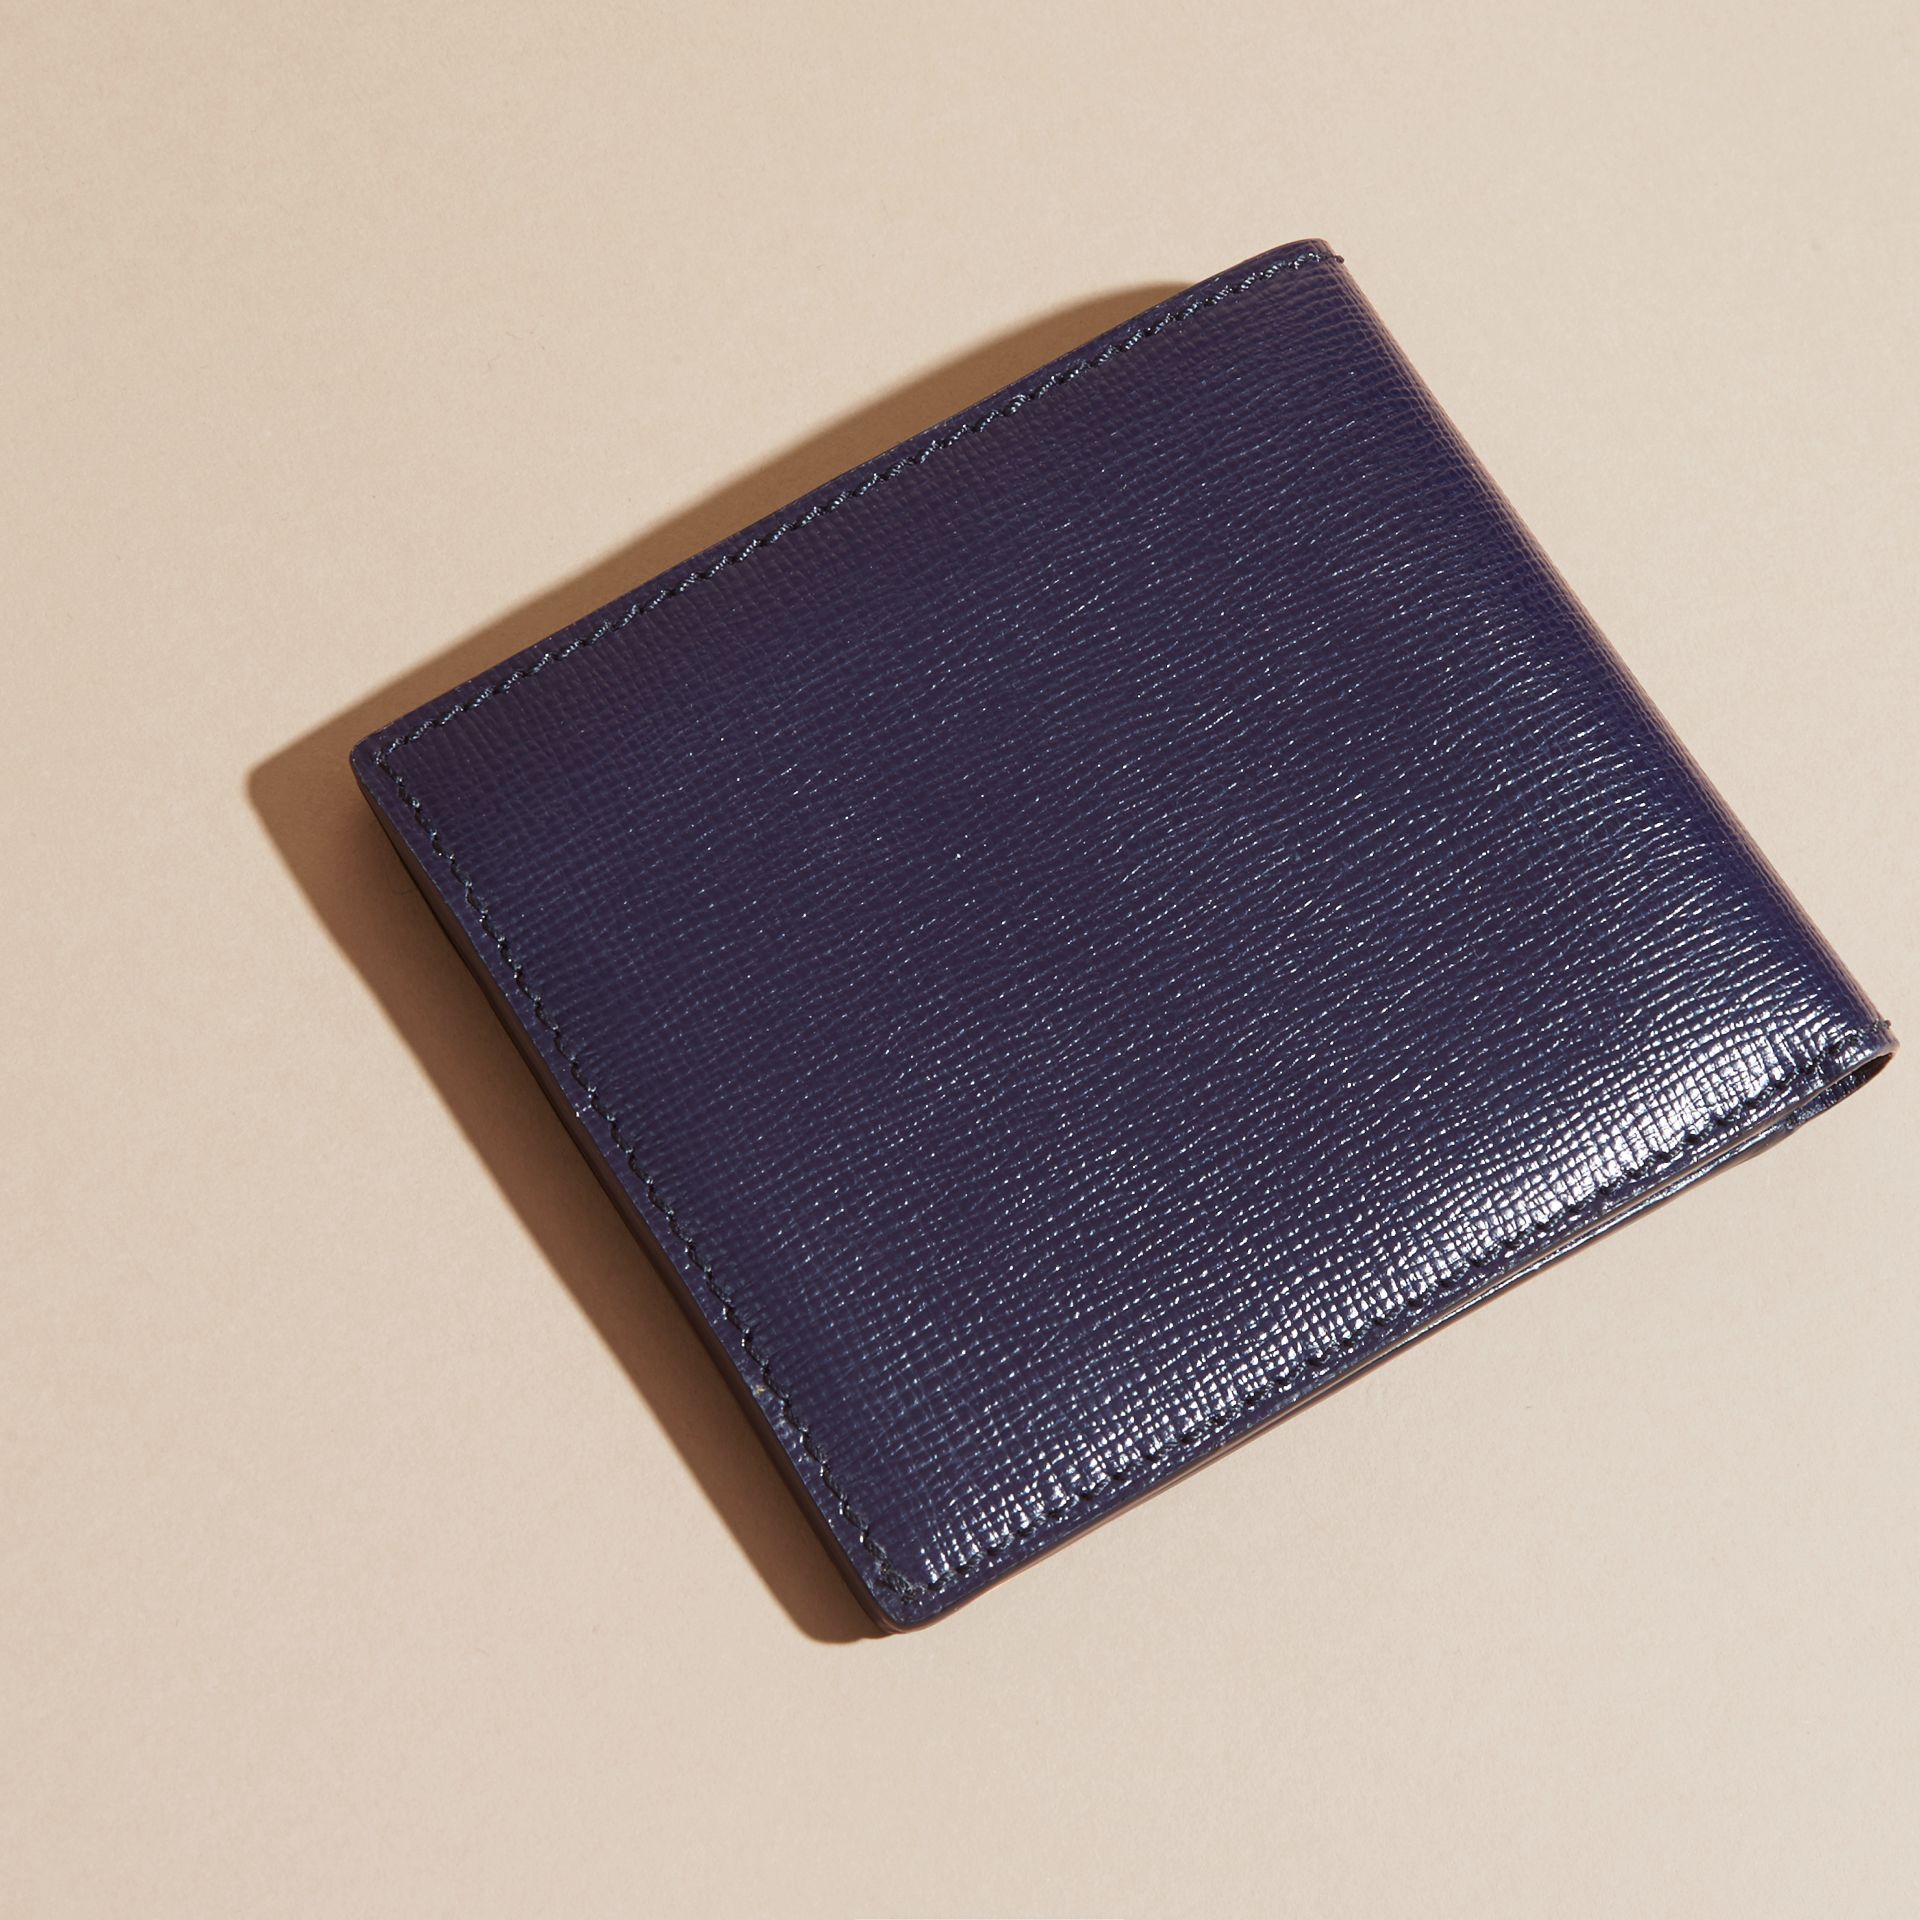 Dark navy London Leather Folding Wallet Dark Navy - gallery image 3